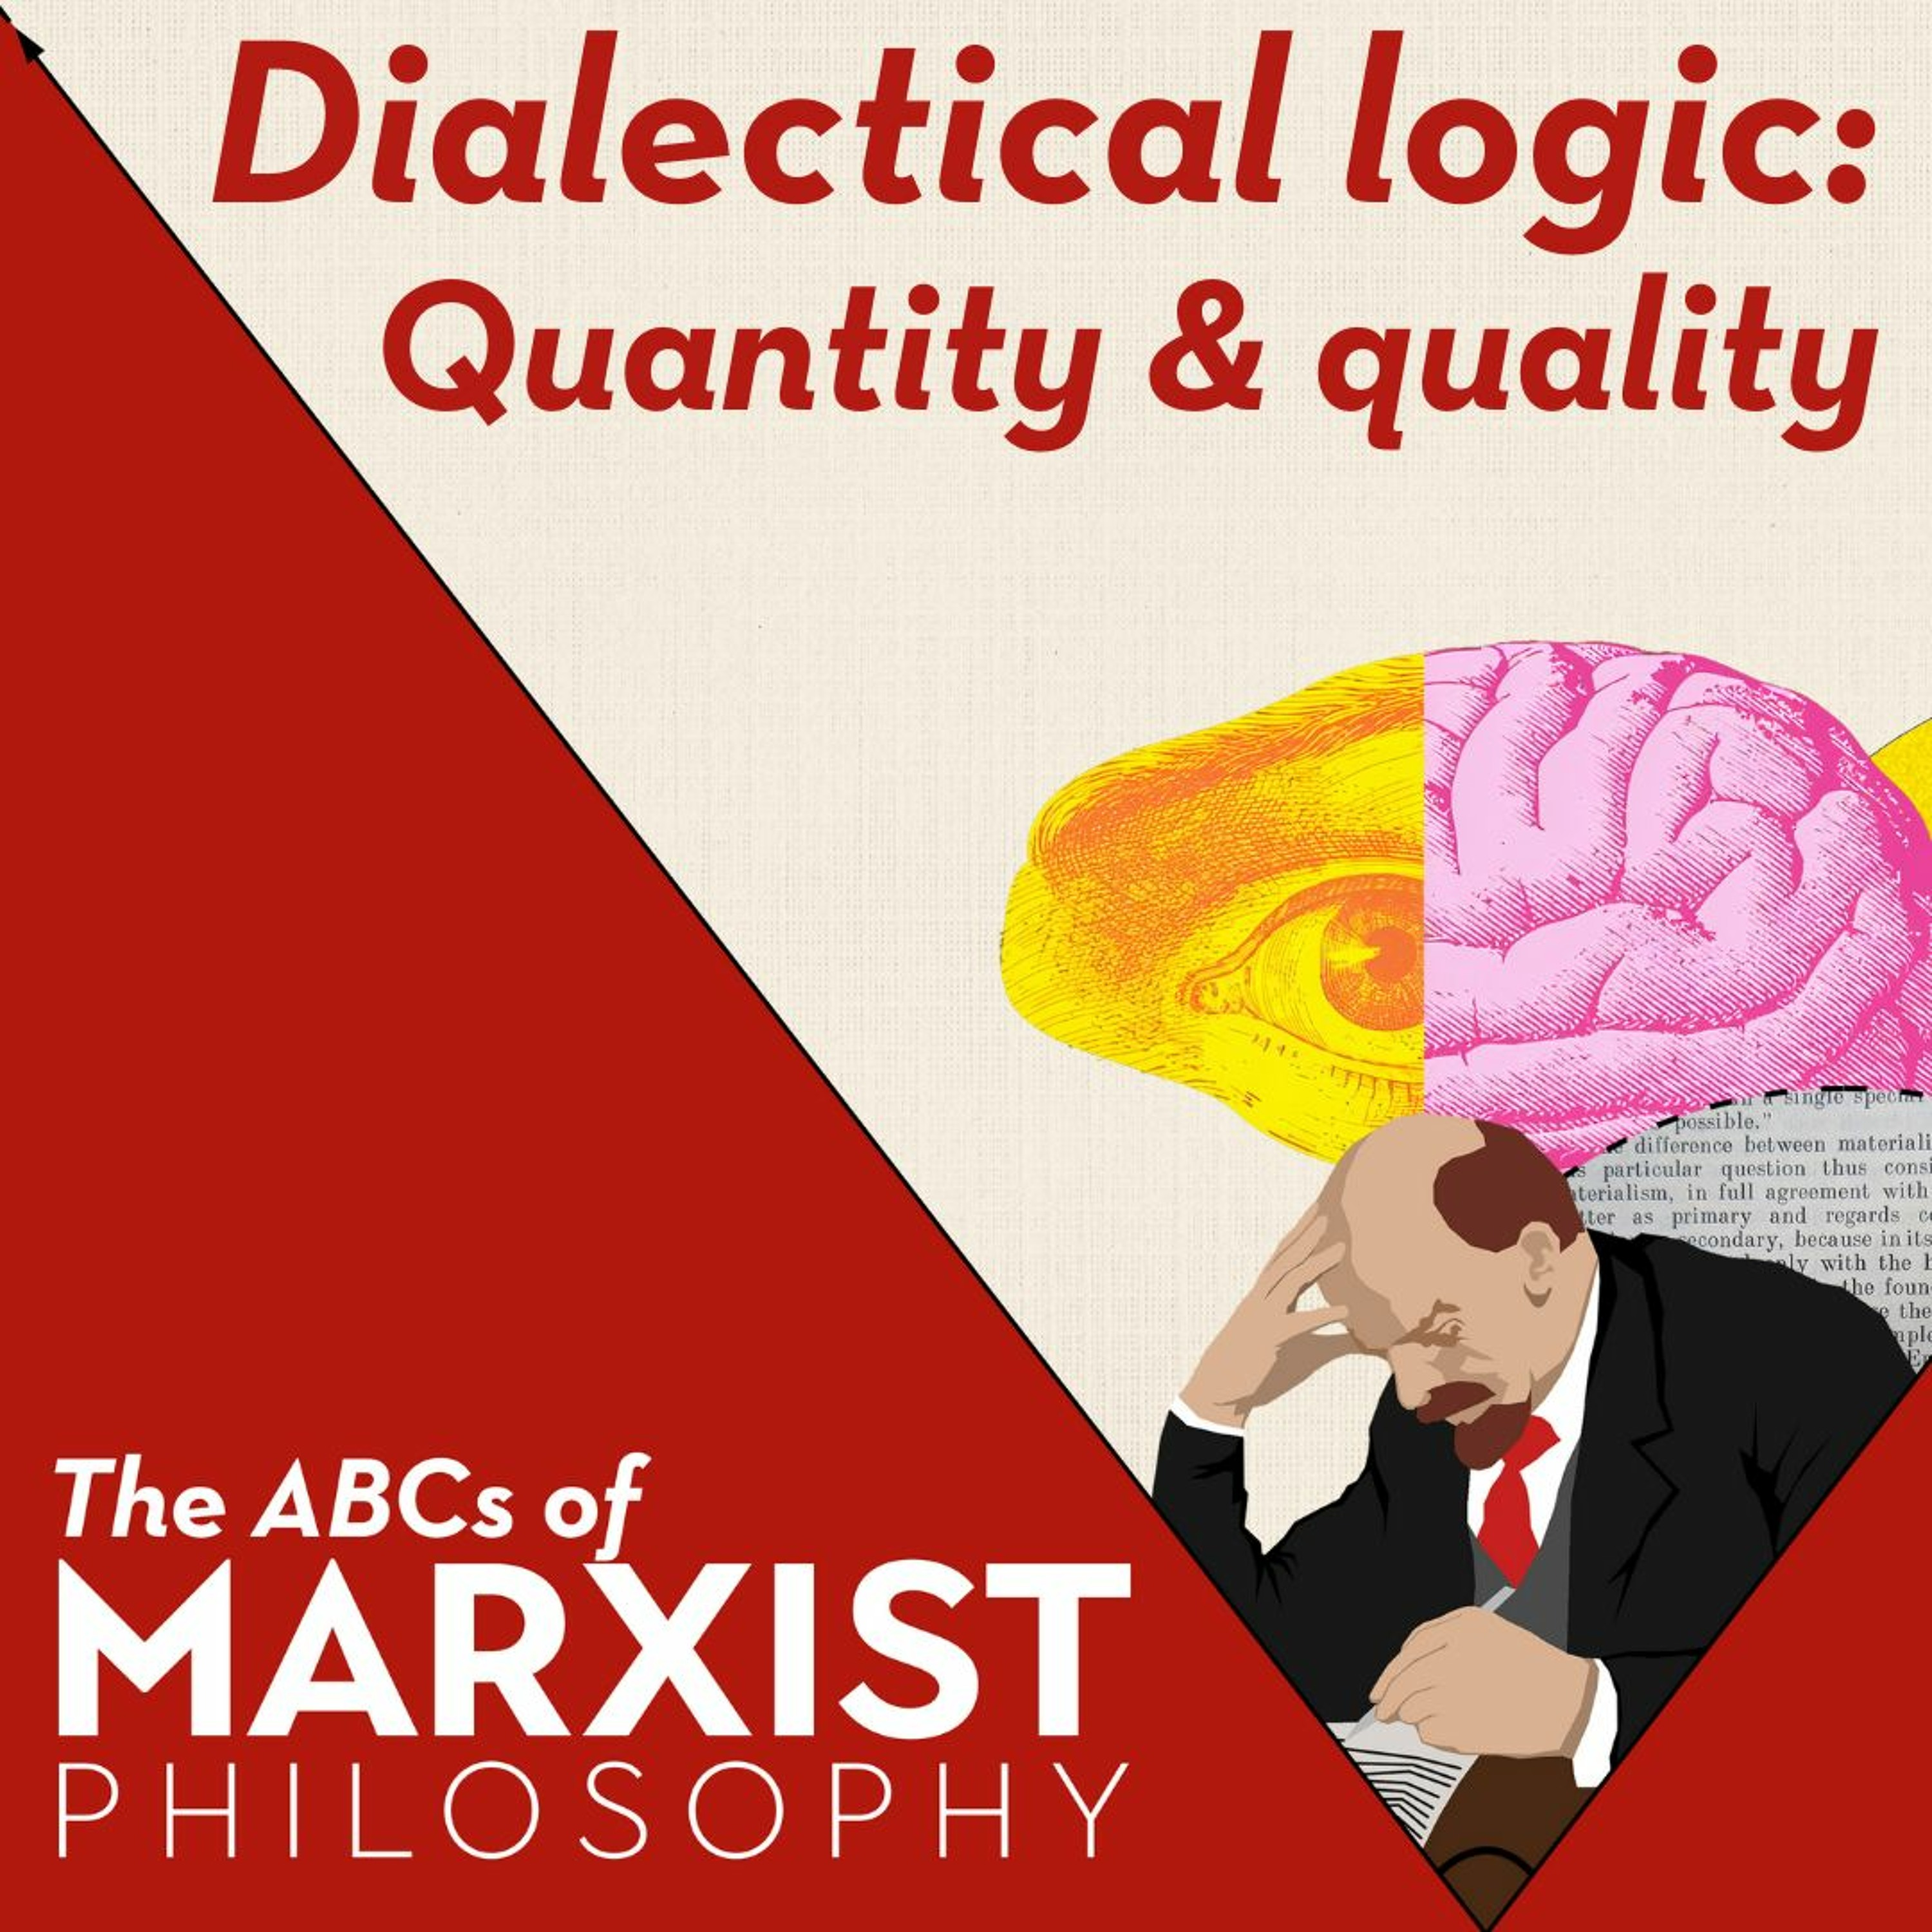 Dialectical logic: quantity and quality | The ABCs of Marxist philosophy (Part 5)